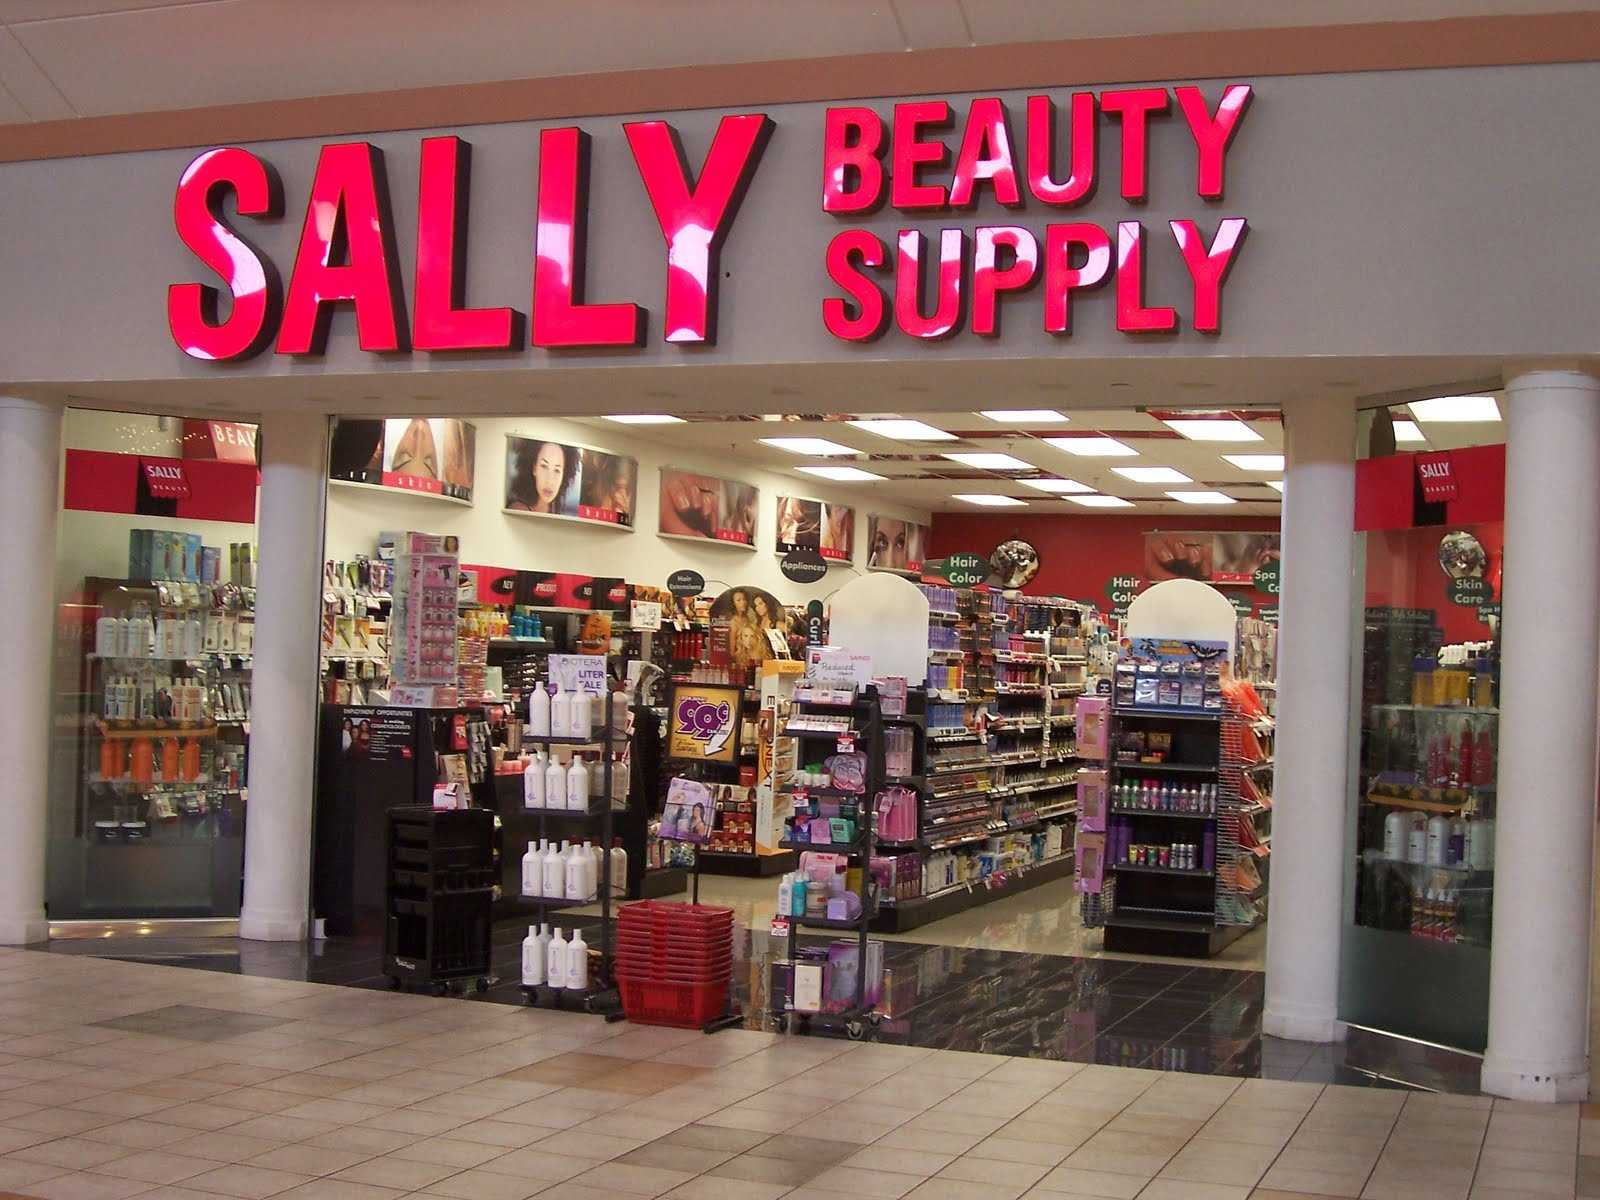 Sally Beauty supply near me,  sally's beauty supply near me